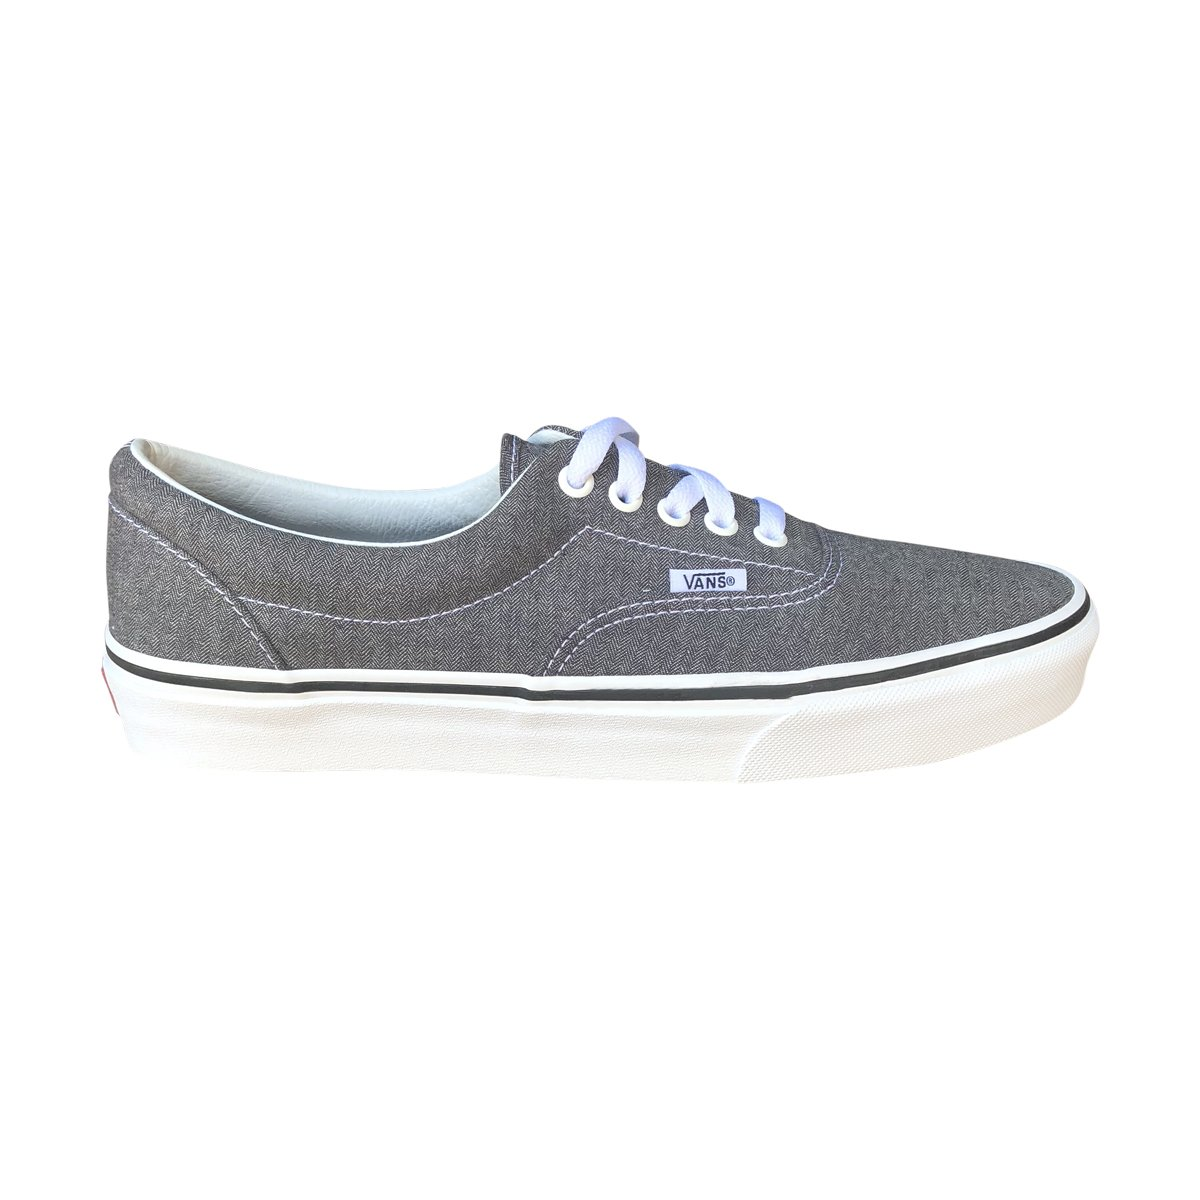 Vans Unisex Era Skate Shoes, Classic Low-Top Lace-up Style in Durable Double-Stitched Canvas and Original Waffle Outsole B072HM4N7M 12 M US Women / 10.5 M US Men|Micro Herringbone Blk/Tw